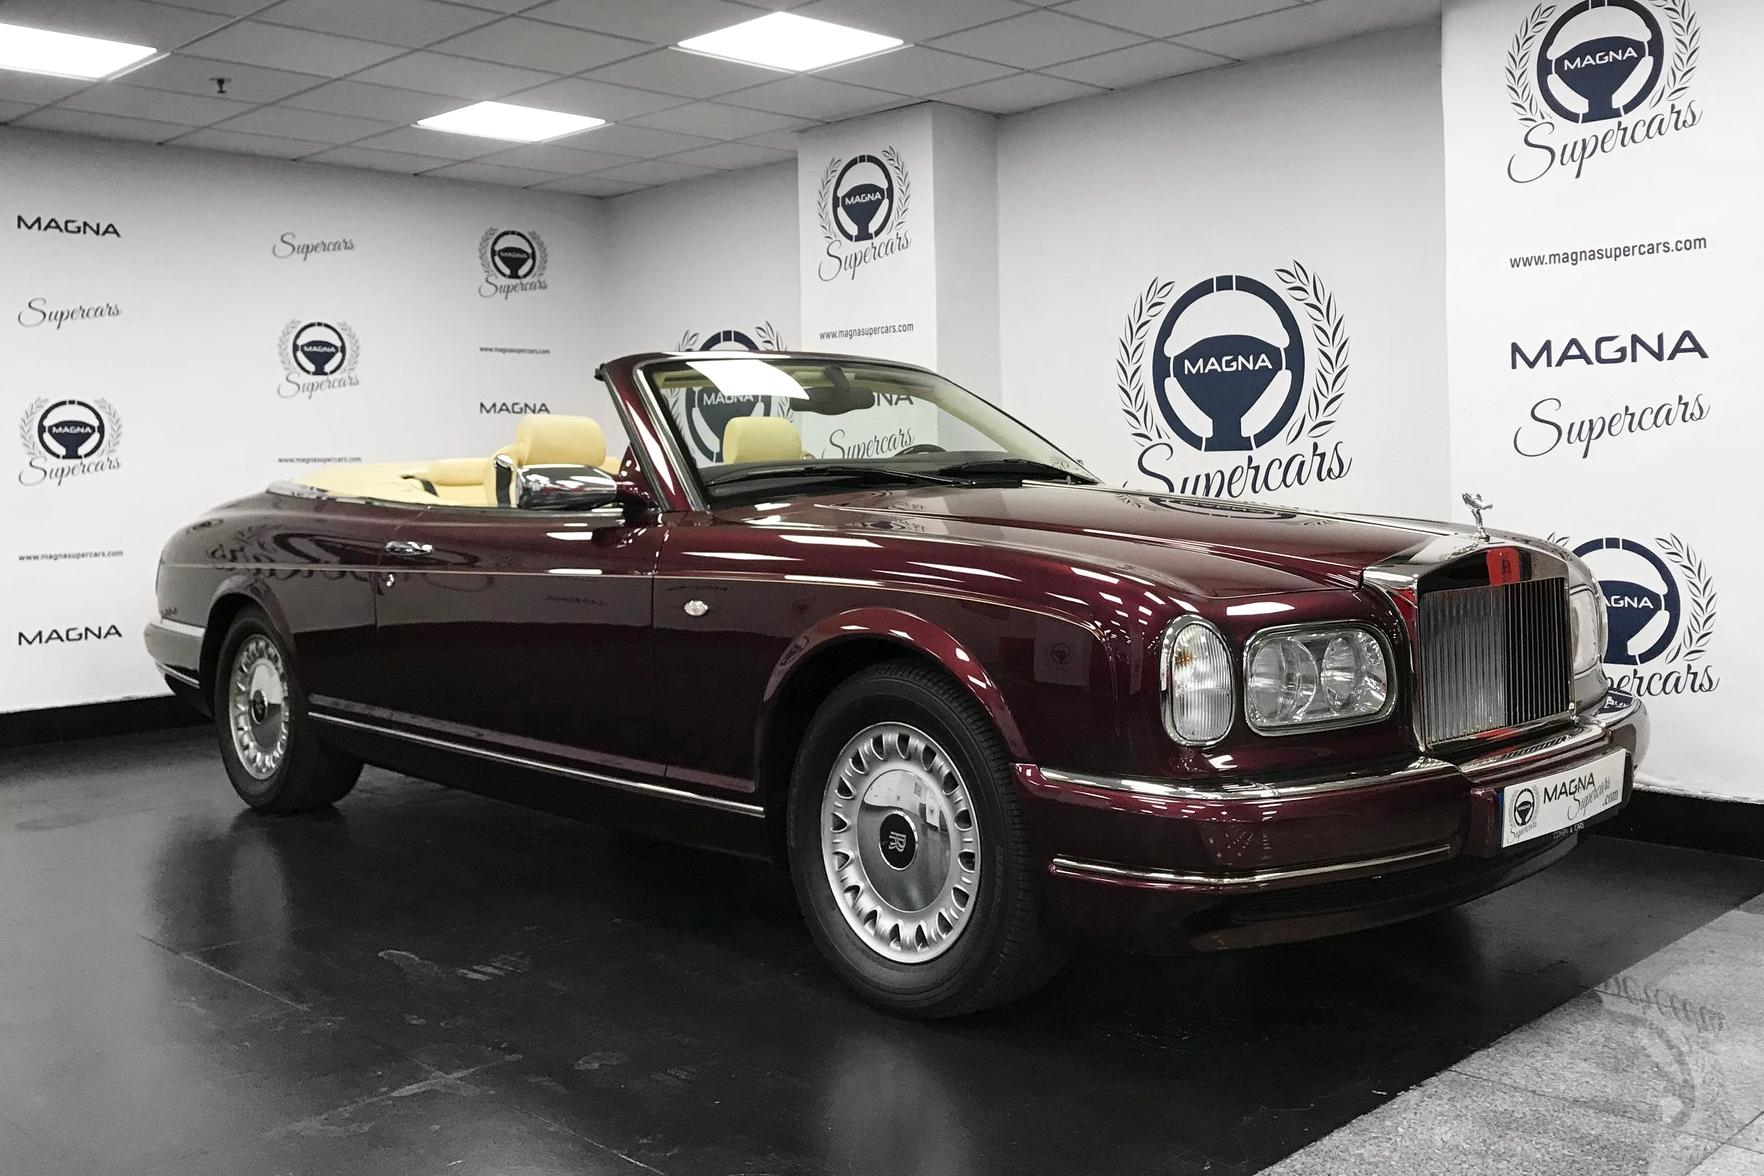 Whats is the most expensive Rolls Royce car names: Phantom, Silver Ghost, and the most expensive classic Rolls Royce and SUV. Plus, the most expensive Rolls Royce cars for sale in 2021.